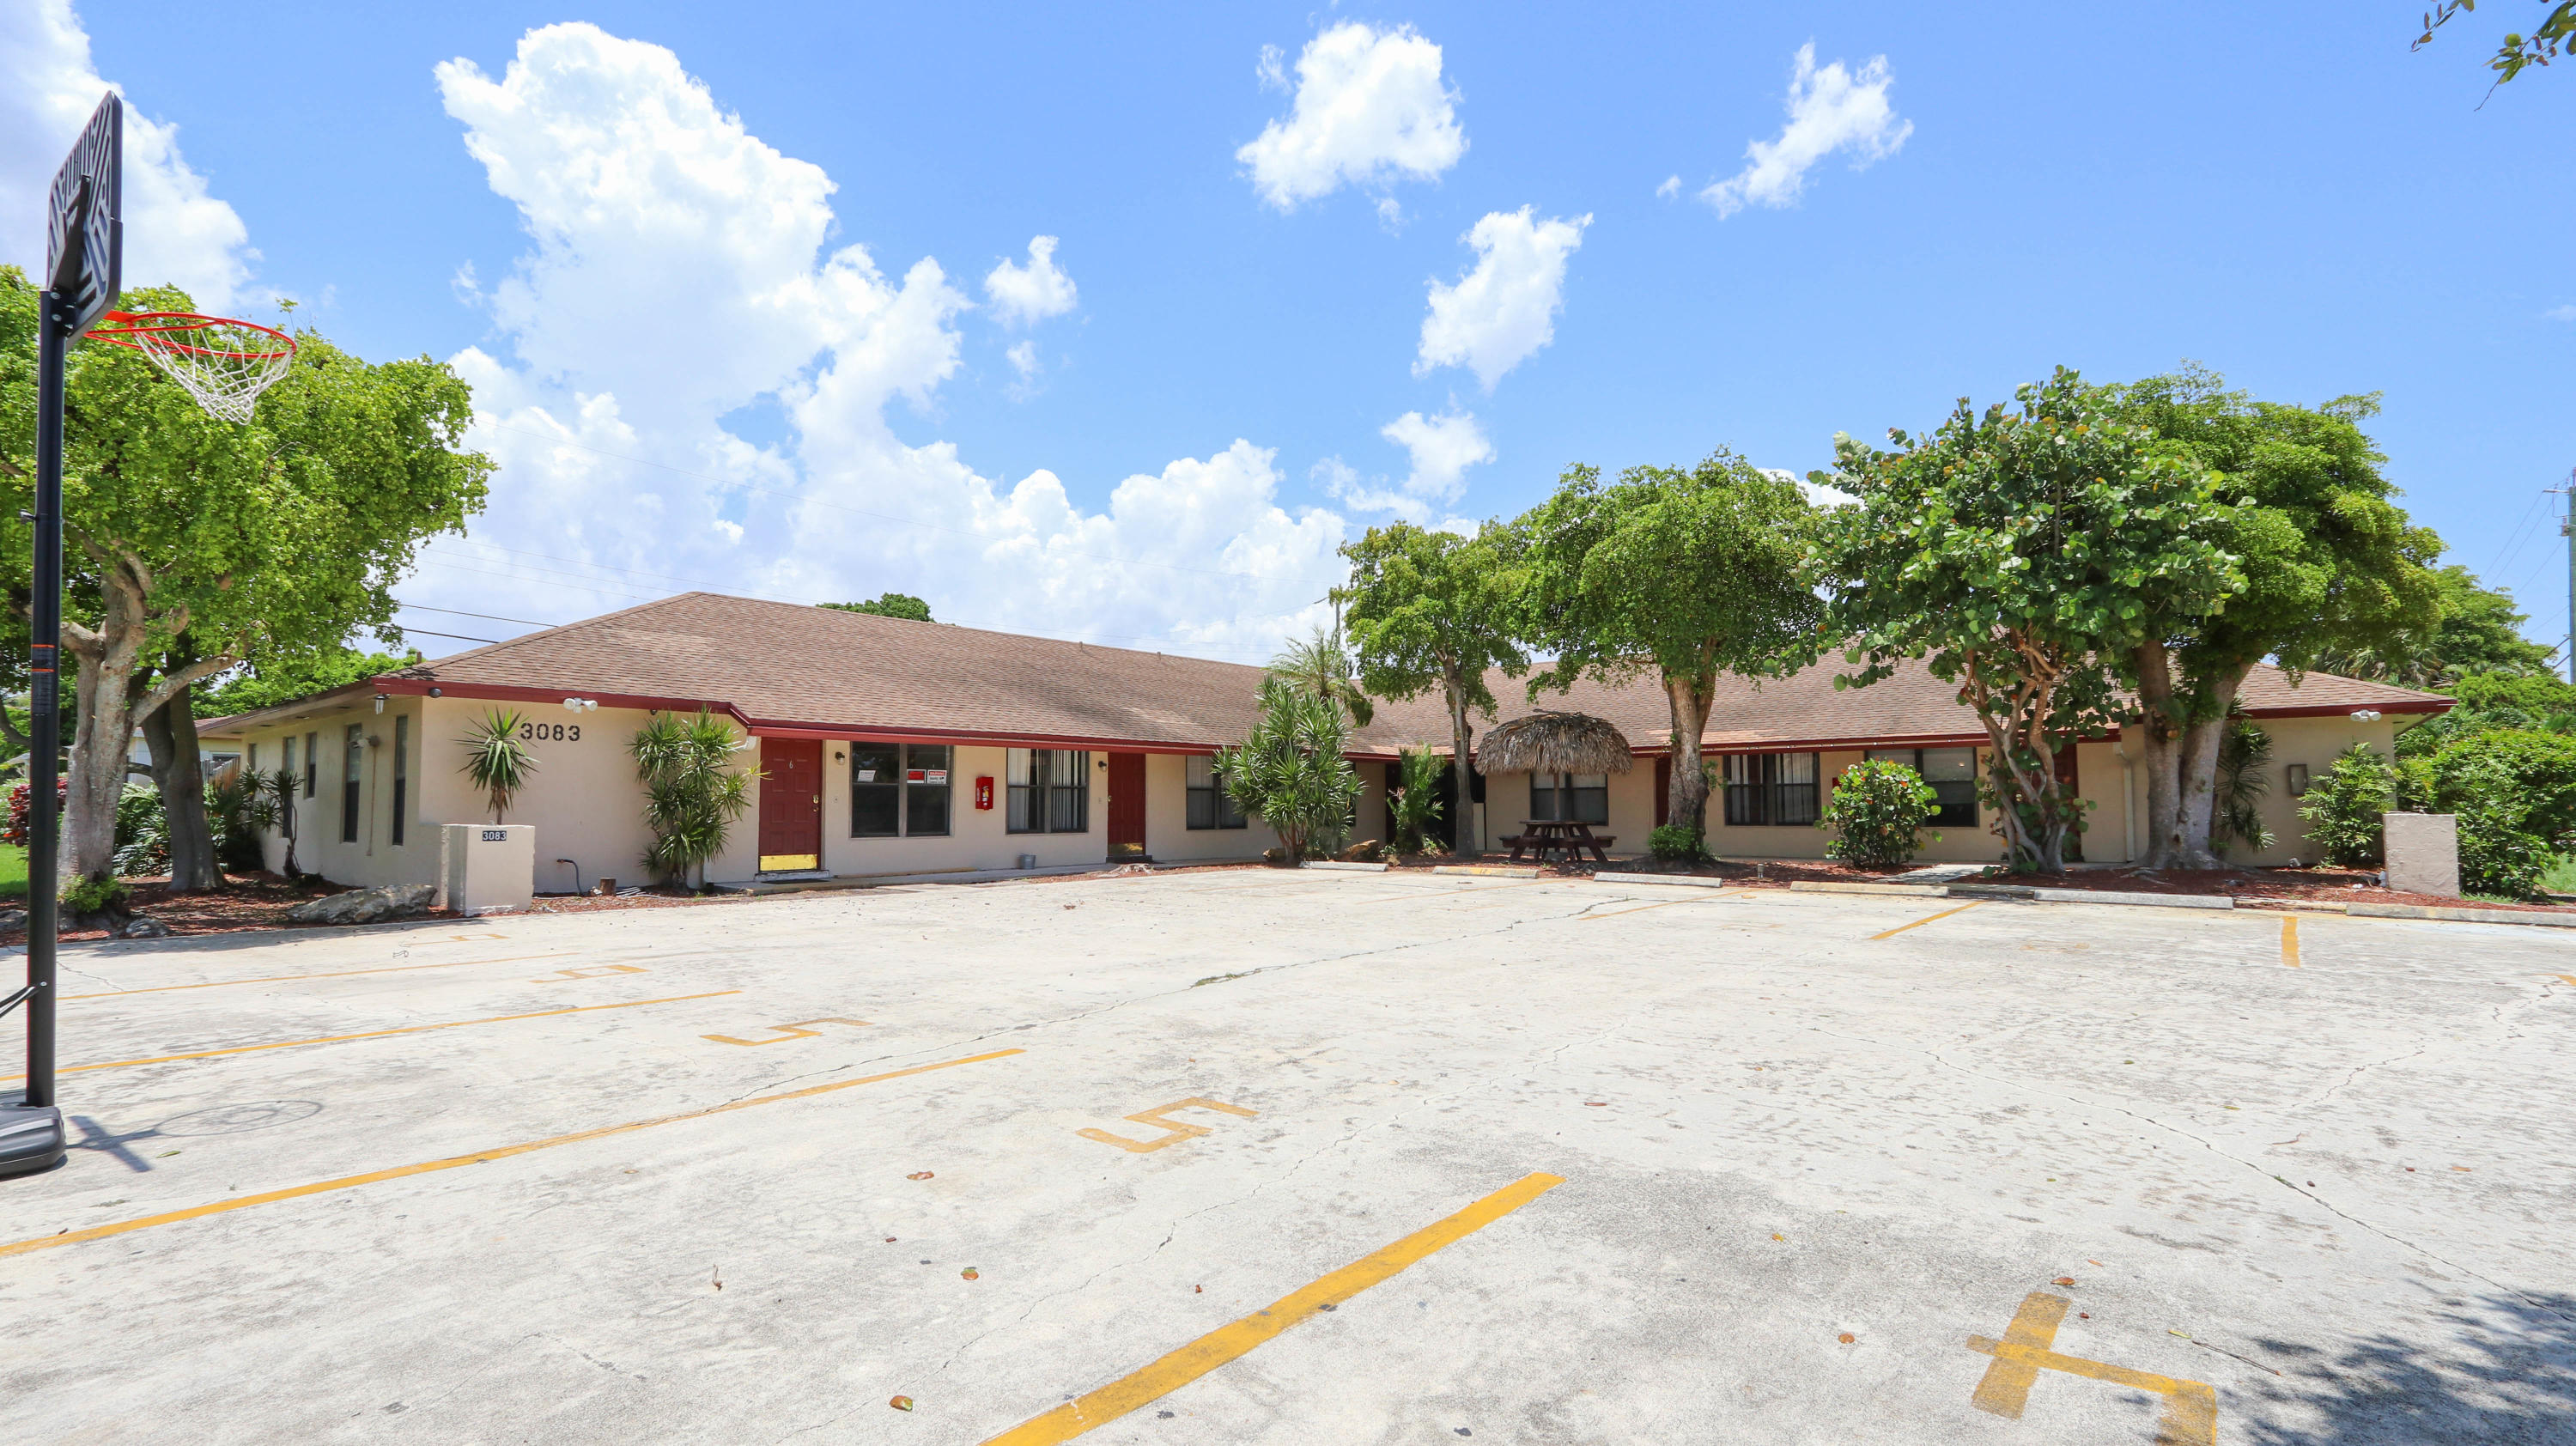 3083 Florida Mango Road, Lake Worth, Florida 33467, 2 Bedrooms Bedrooms, ,1 BathroomBathrooms,Condo/Coop,For Rent,All 6 Could Be Rented For Rehab/ass livi-Set Up!!!,Florida Mango,1,RX-10538037